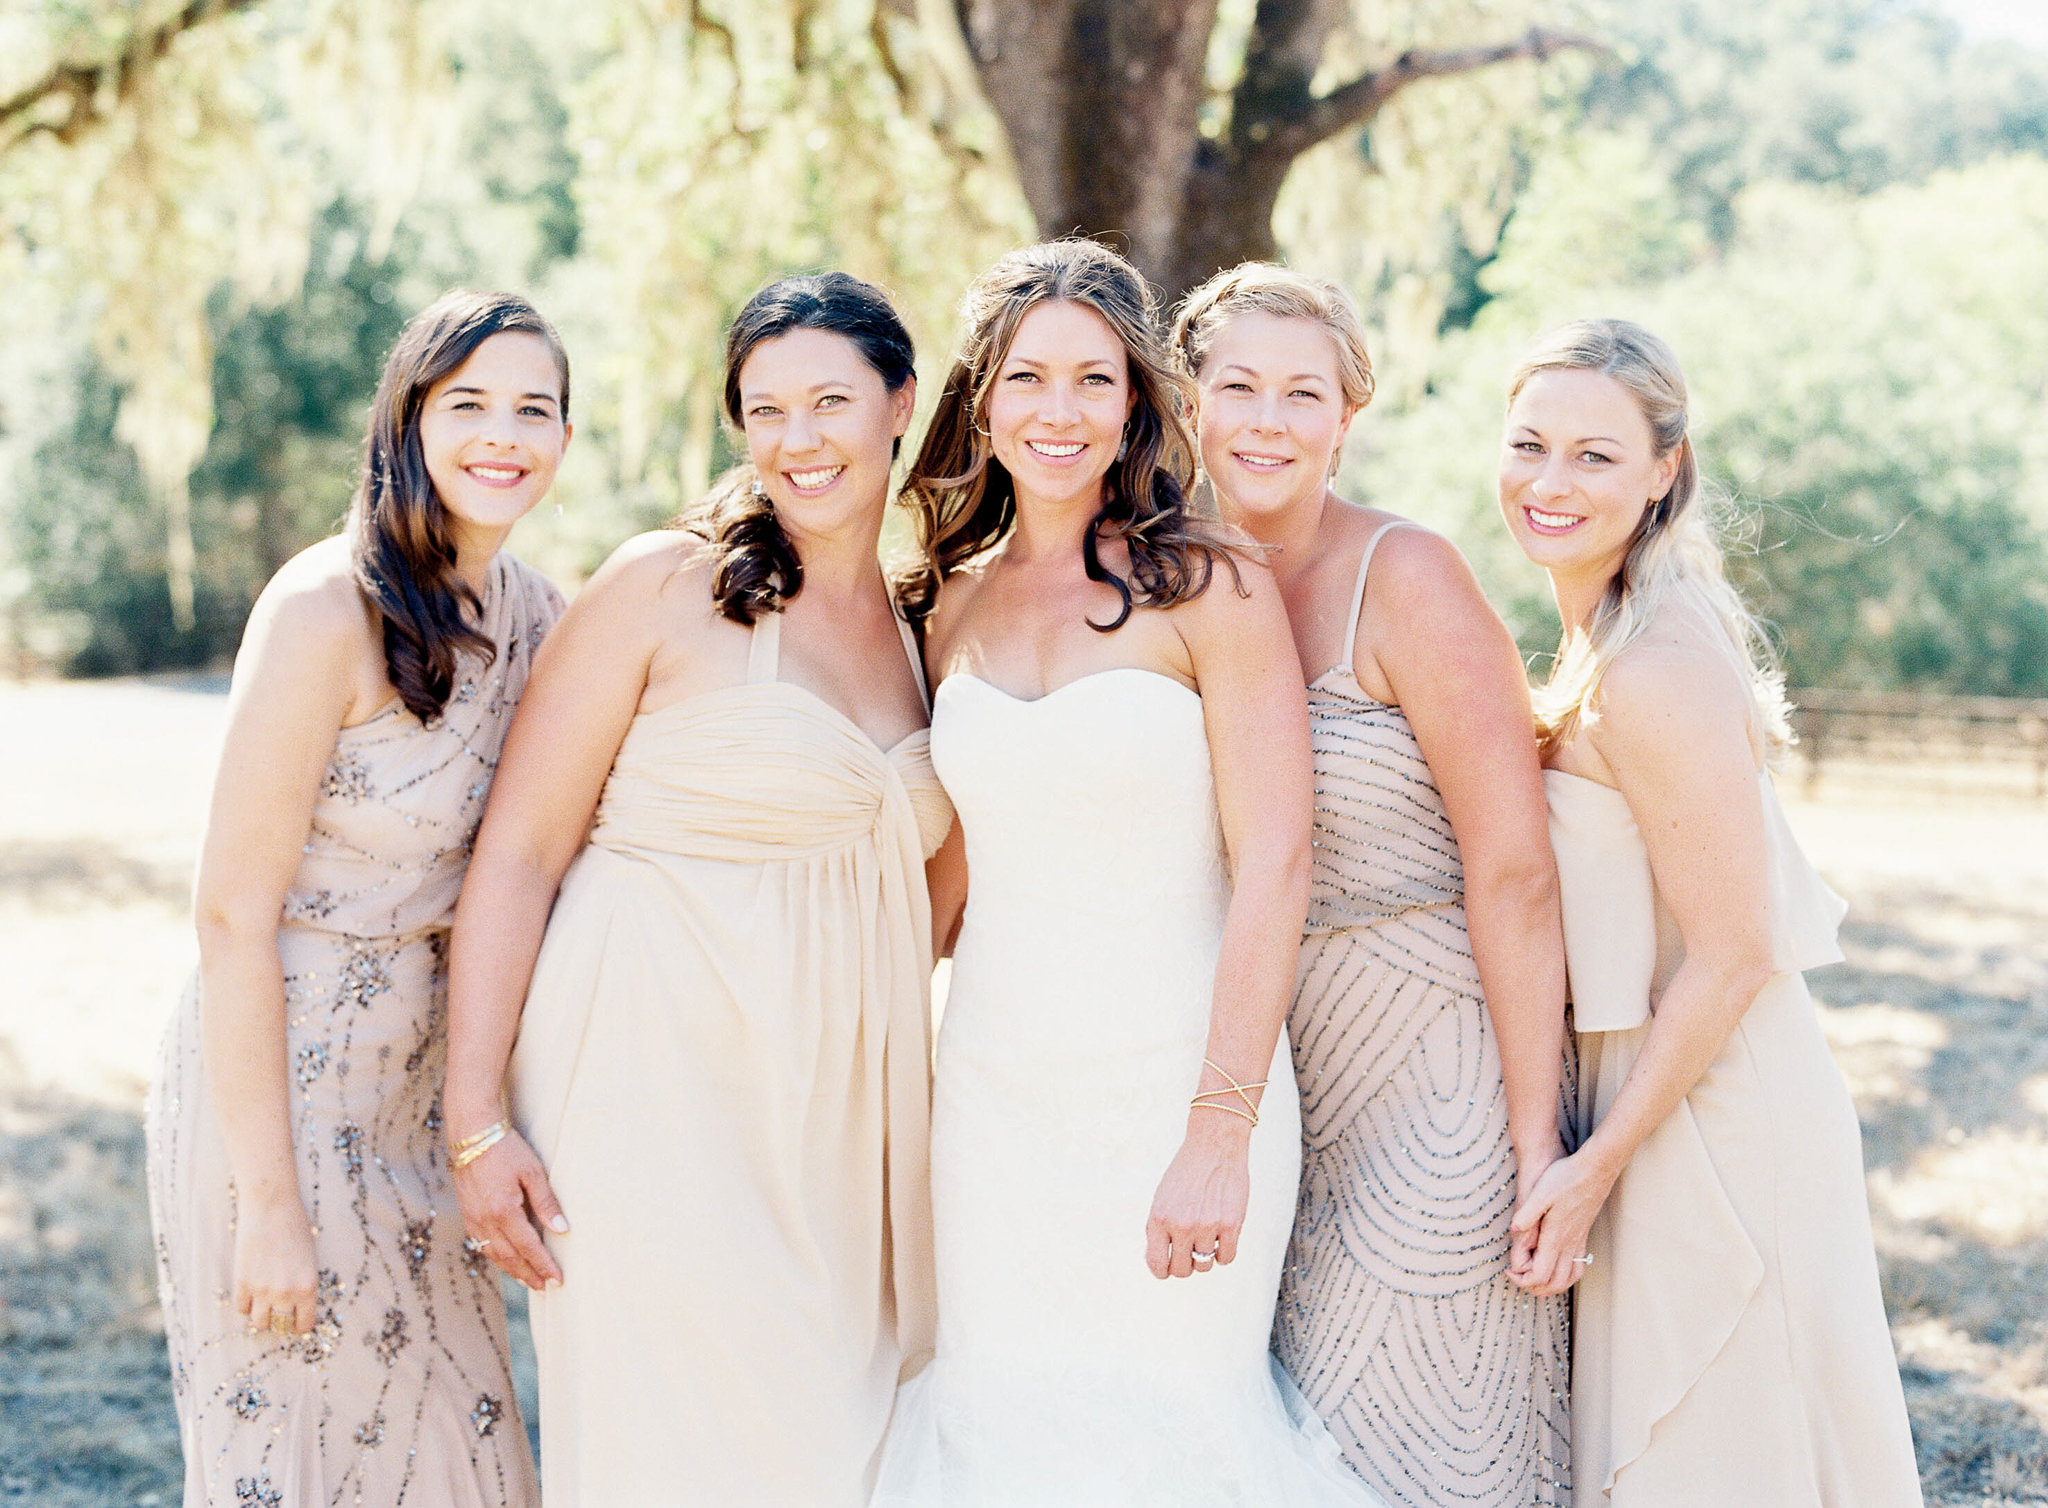 Meghan Mehan Photography - Fine Art Film Wedding Photography - San Francisco | Napa | Sonoma | Big Sur | Chicago | Minneapolis | Milwaukee | Lake Geneva | Door County | Wisconsin 032.jpg